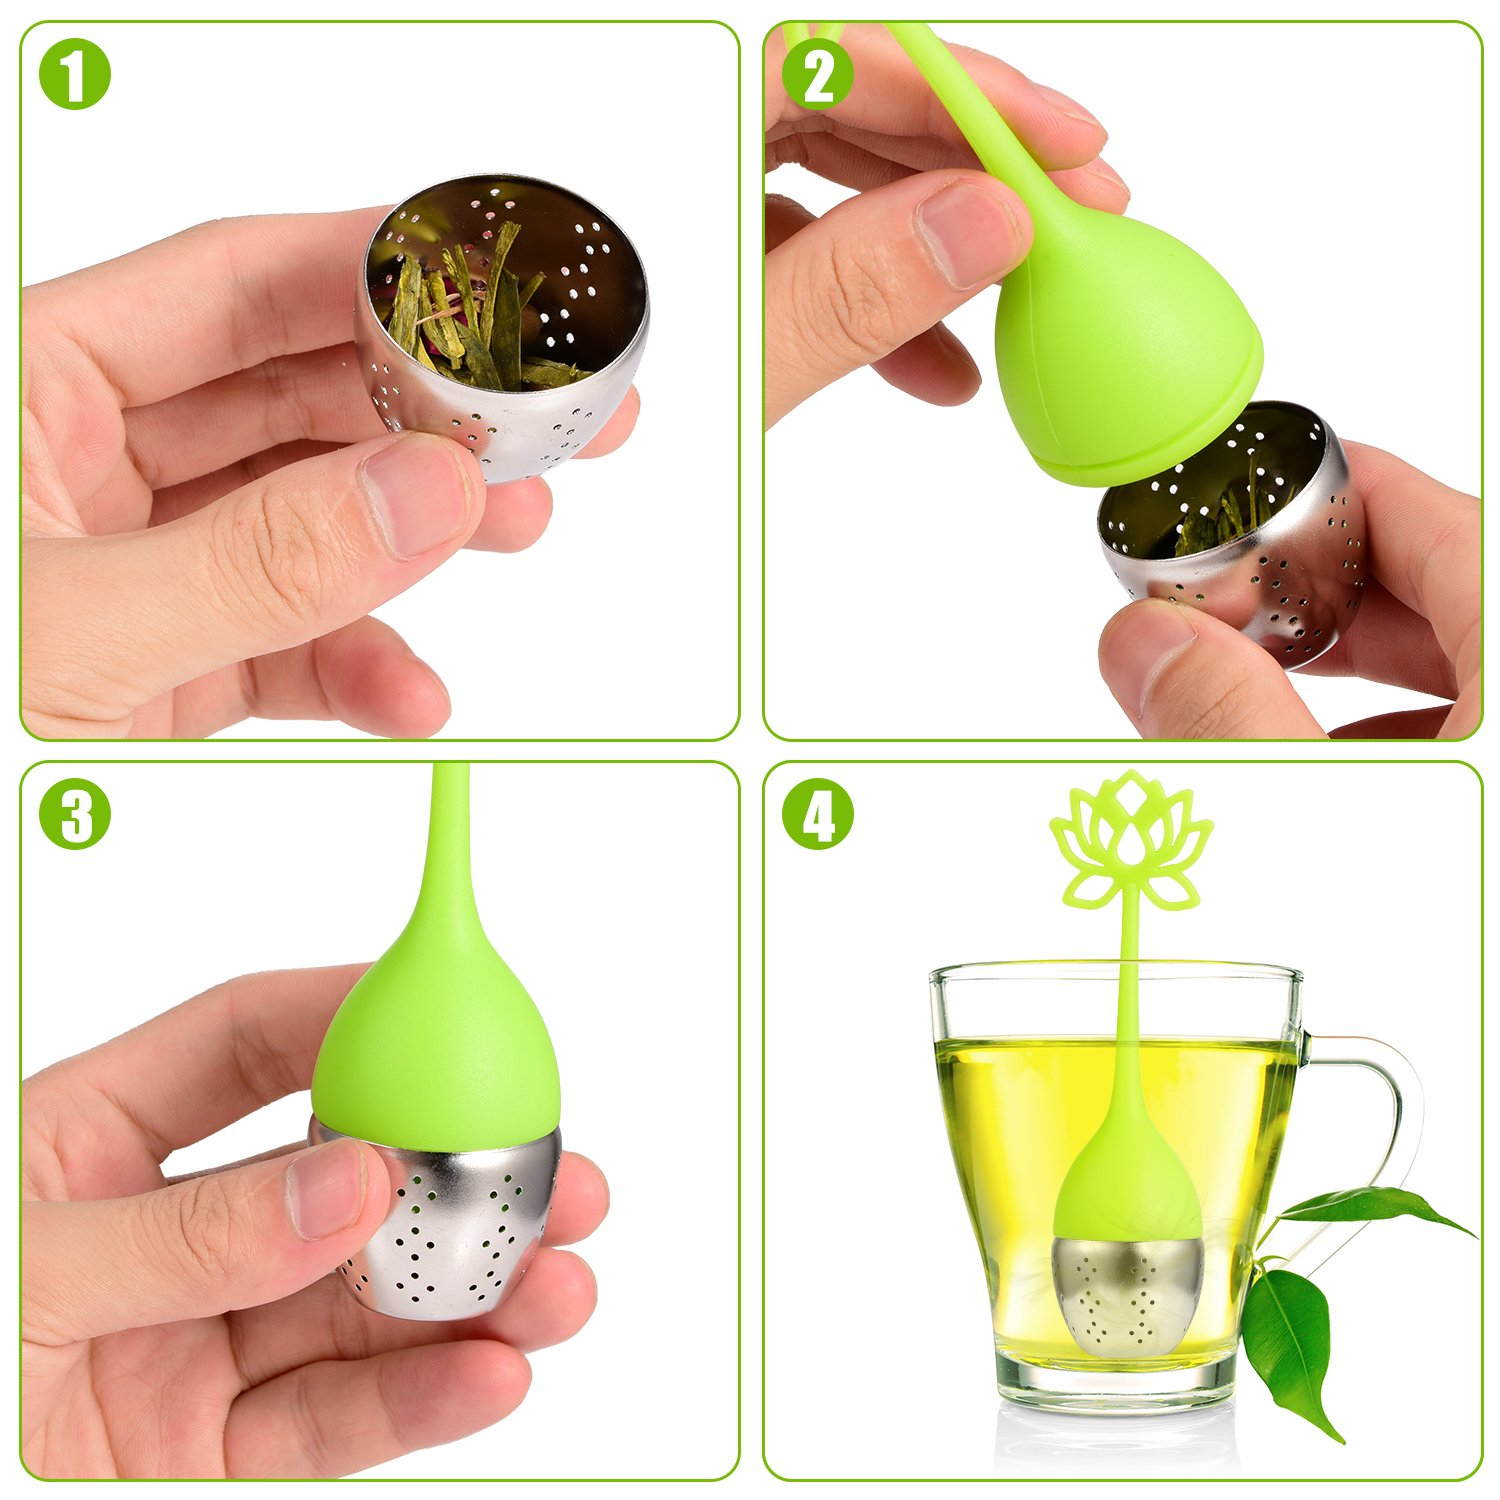 Tea Infuser Reusable Tea Ball Herbal Tea Strainers for Herbal Weight Loss Tea Houswill/™ 4 Pack Silicone Tea Infuser for Loose Tea Tea filters with Handle/& Stainless Steel with Drip Tray